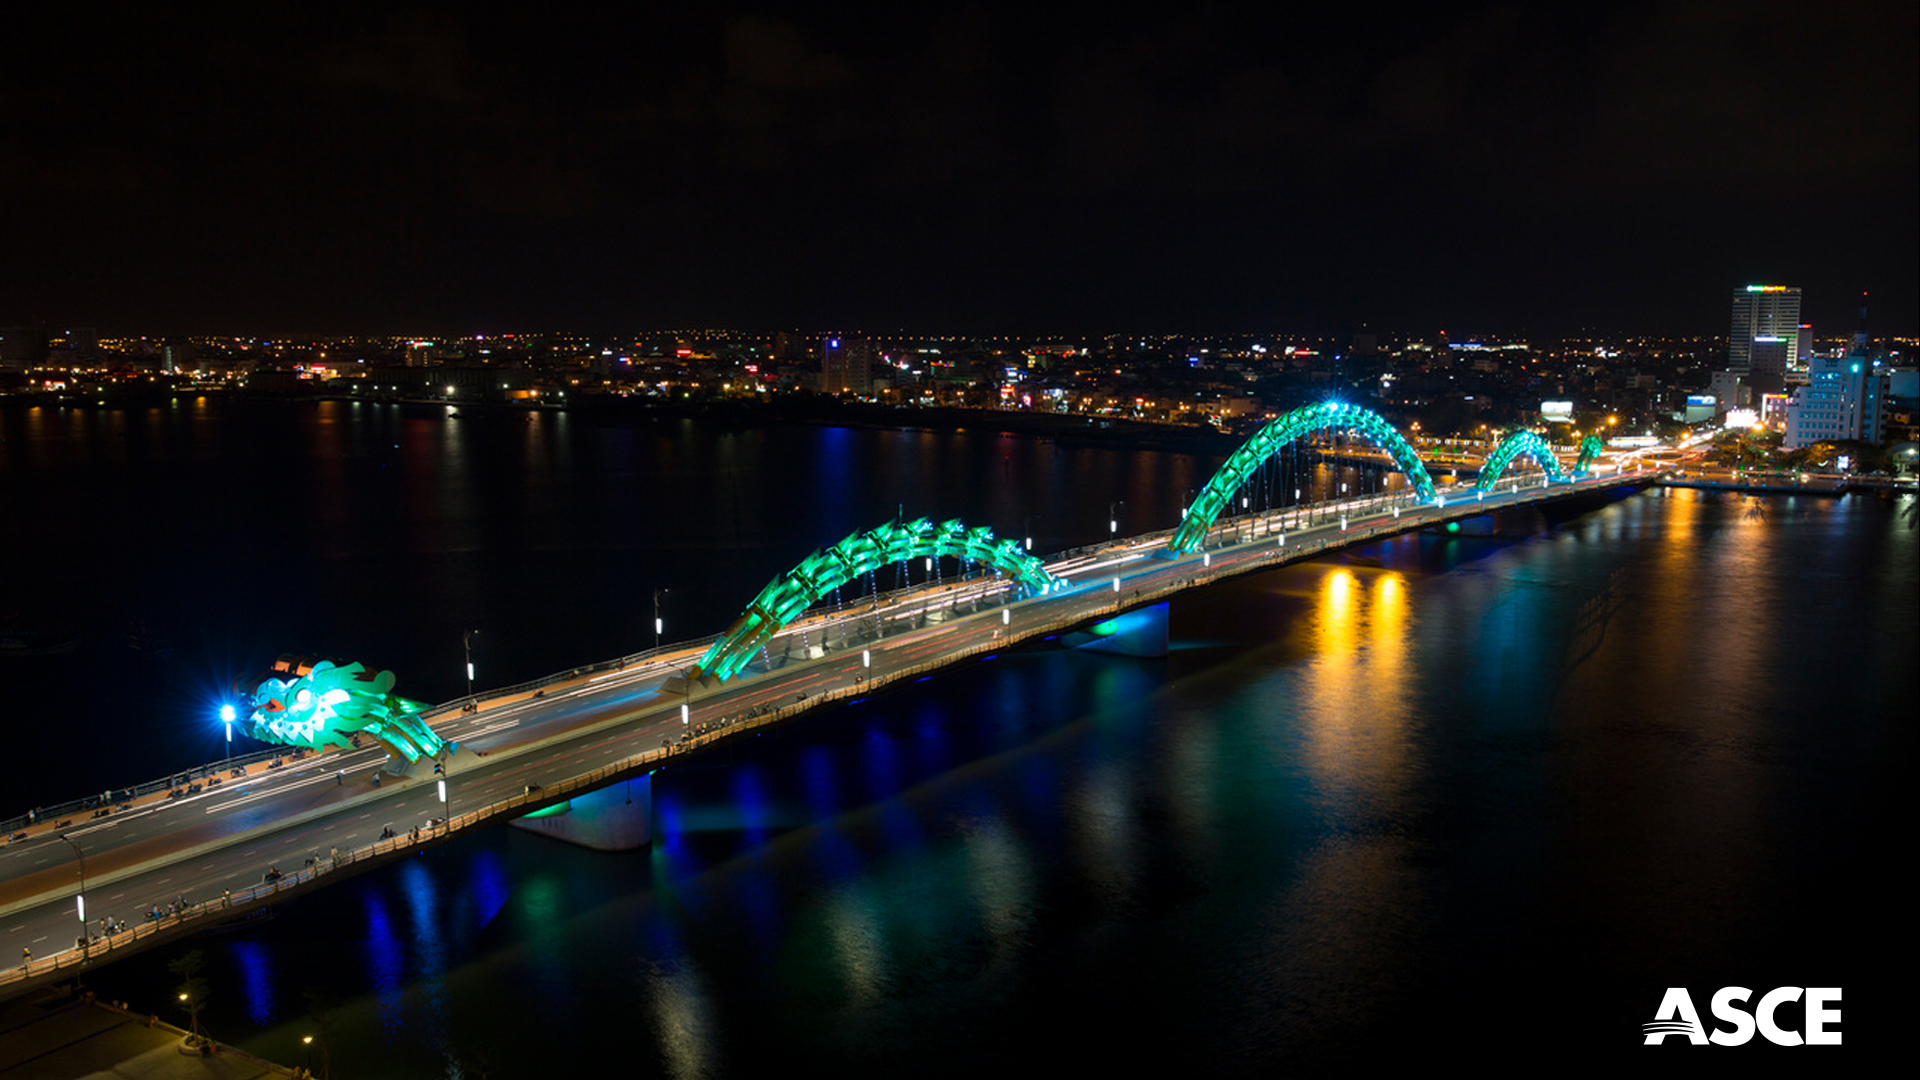 ASCE Dragon Bridge